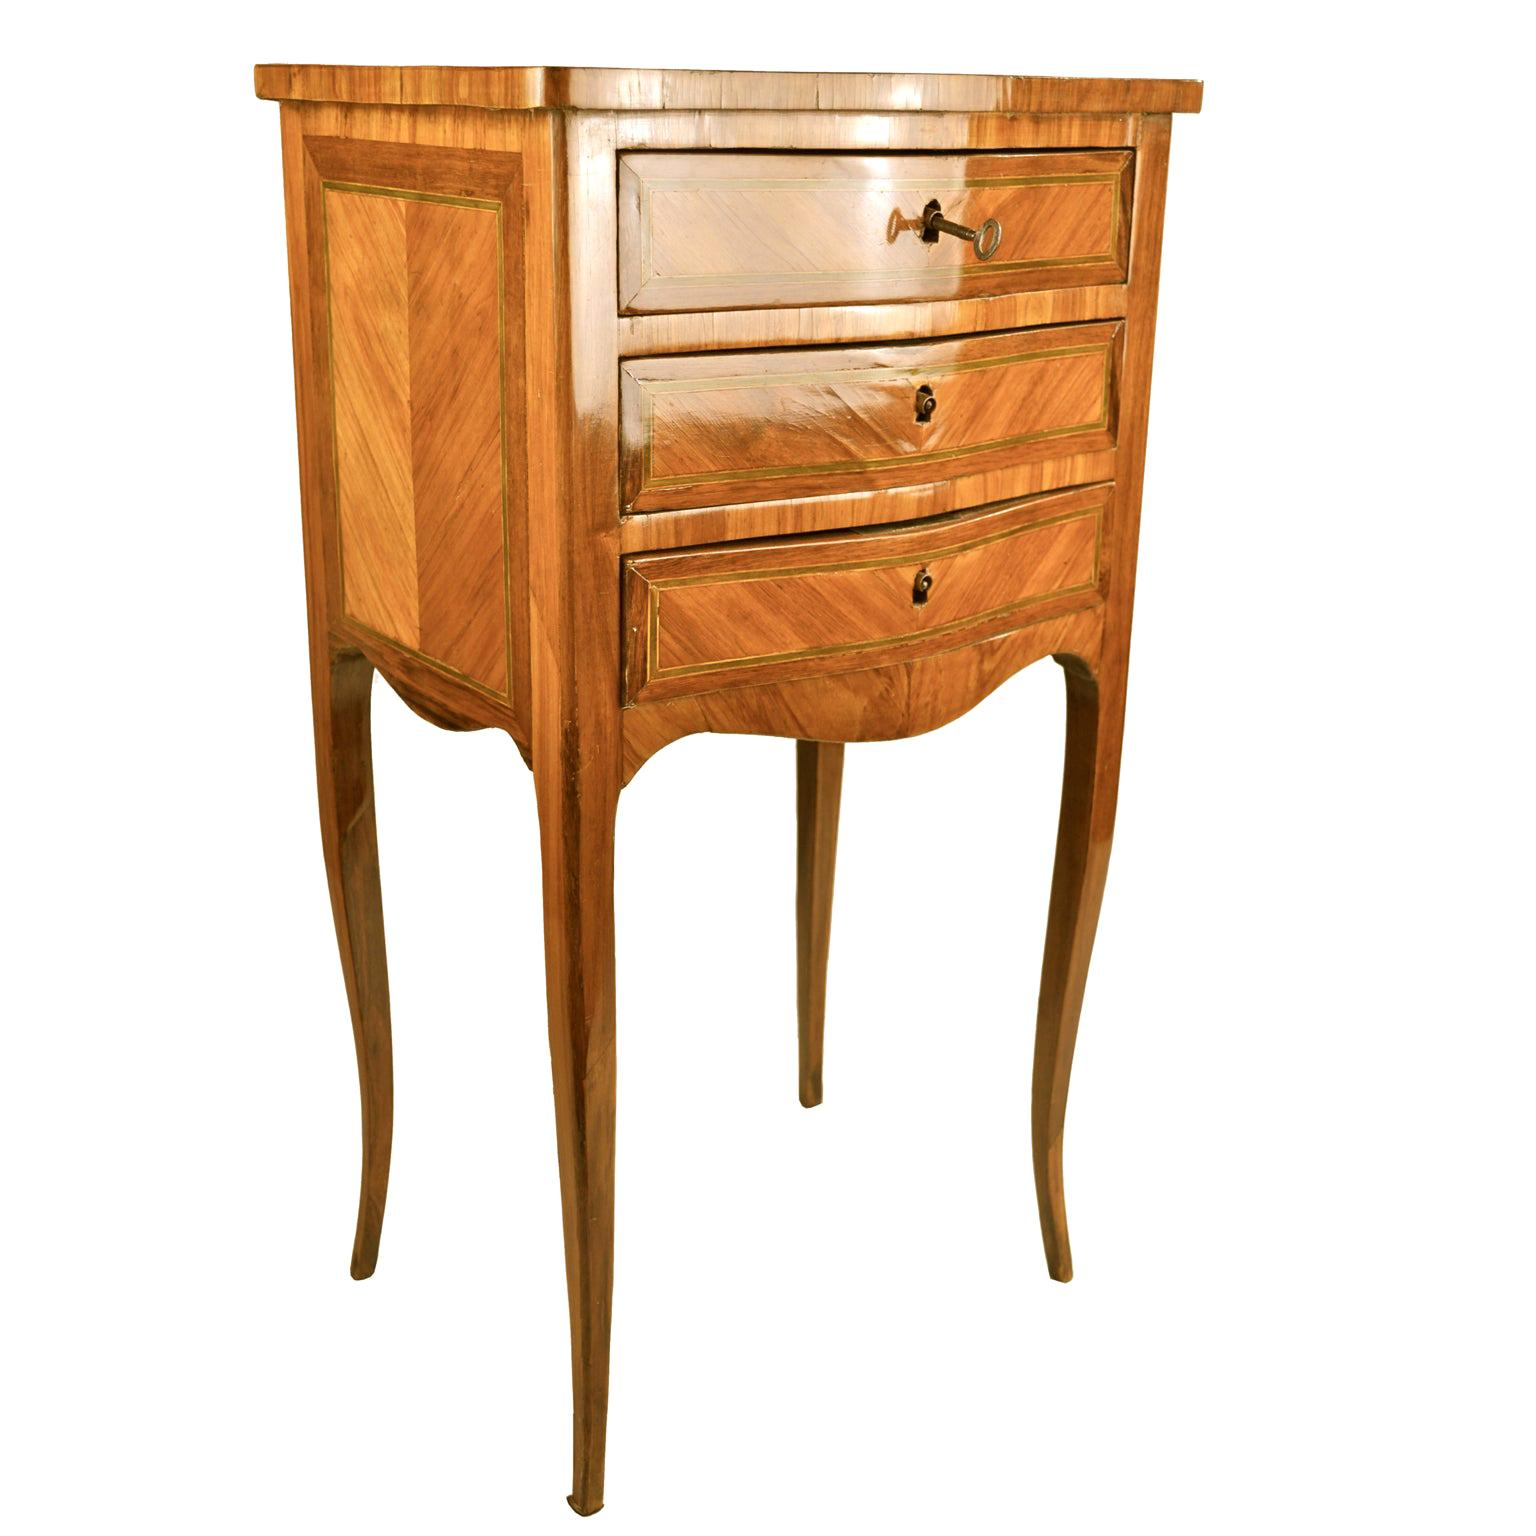 18th Century French Louis XV Occasional Chest/Table with Three Drawers